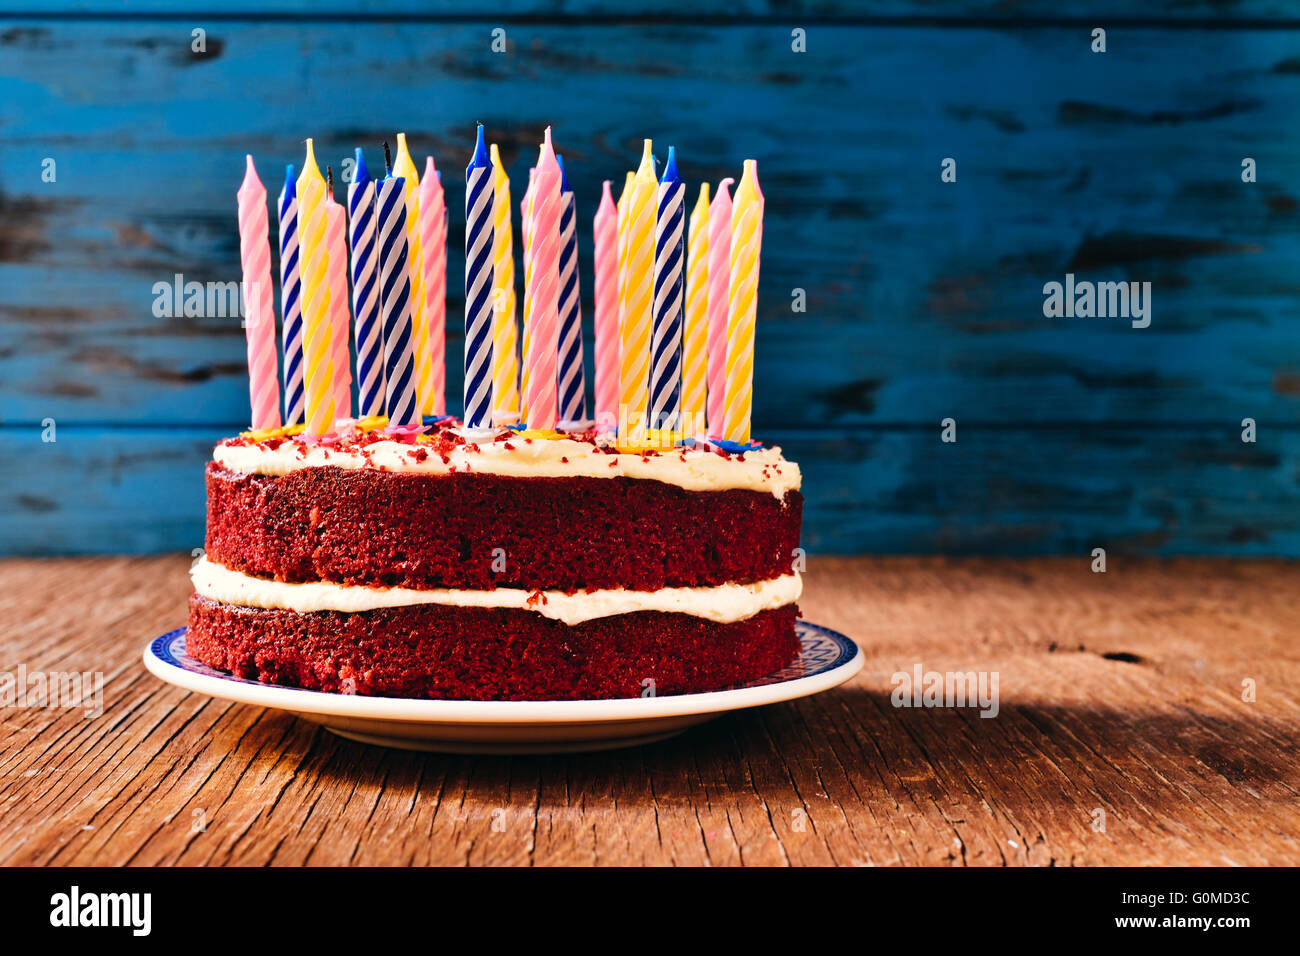 a red velvet cake topped with some unlit candles on a rustic wooden table - Stock Image